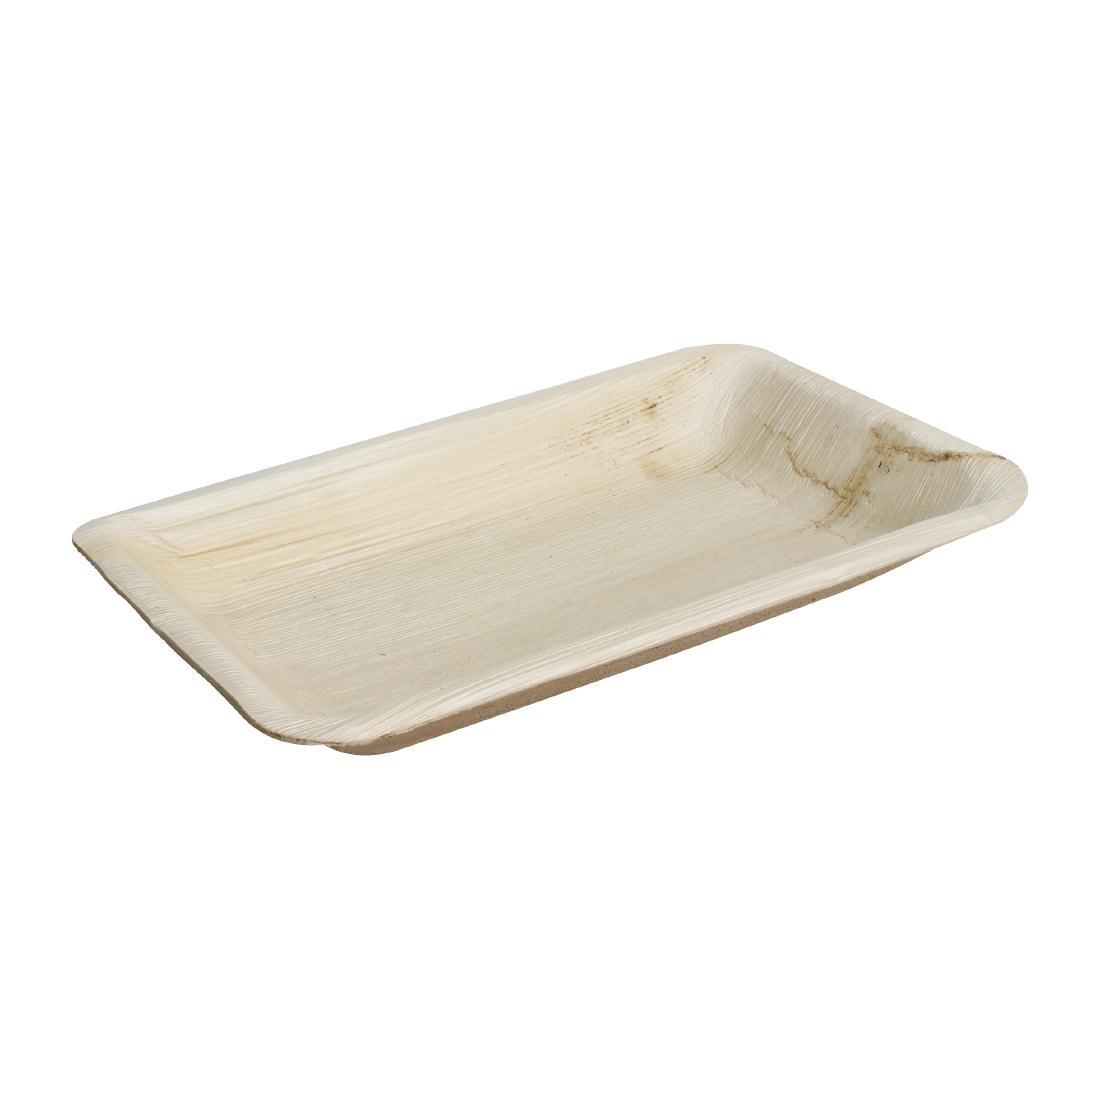 Fiesta Palm Leaf Plate Rectangular 250x160mm (Pack of 100)